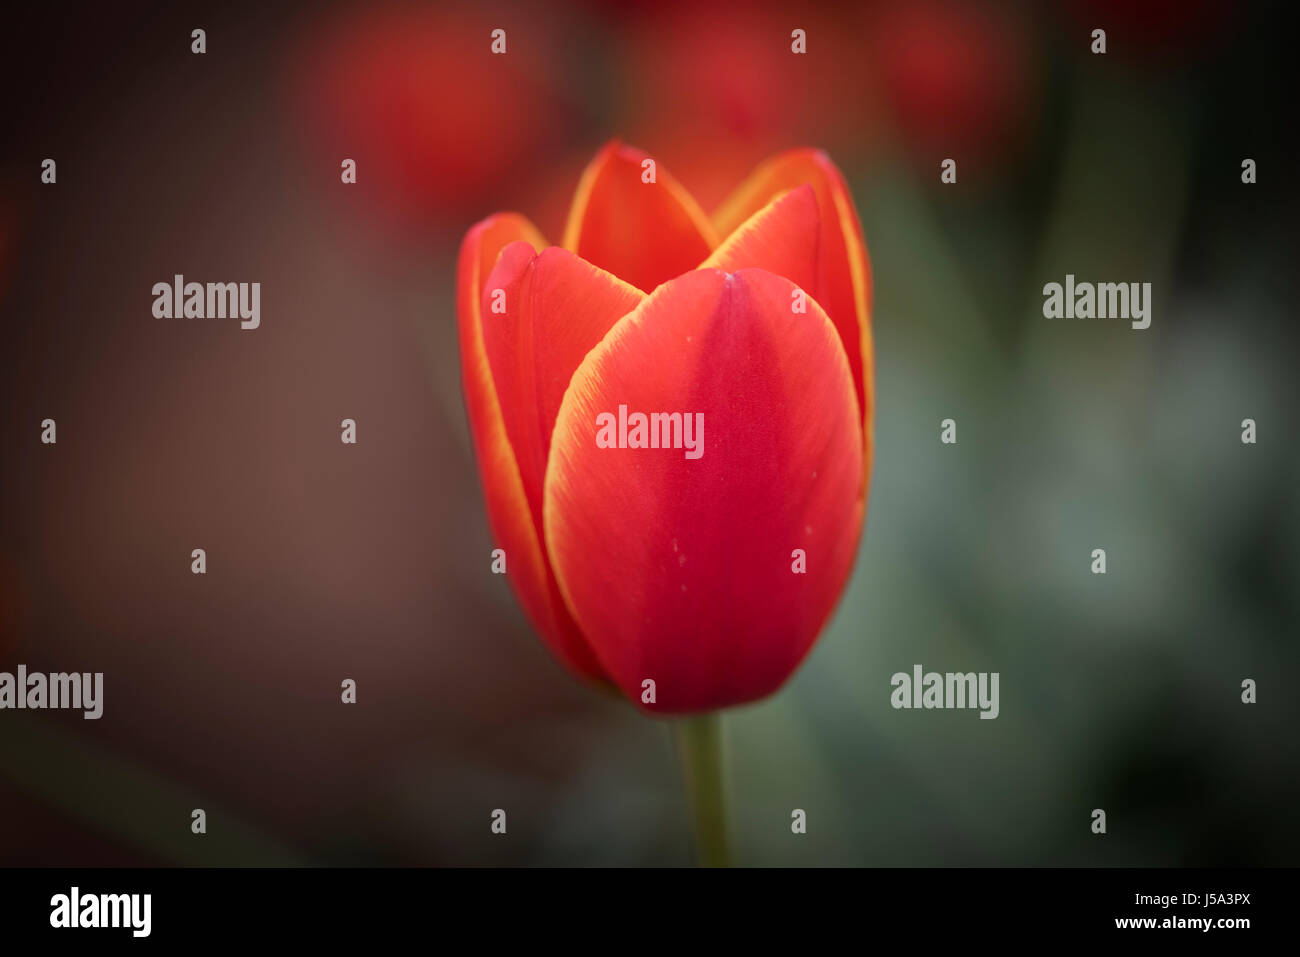 A close-up macro view of a bright red colored tulip with yellow colored edges. Two toned tulip. Dual color tulip. - Stock Image